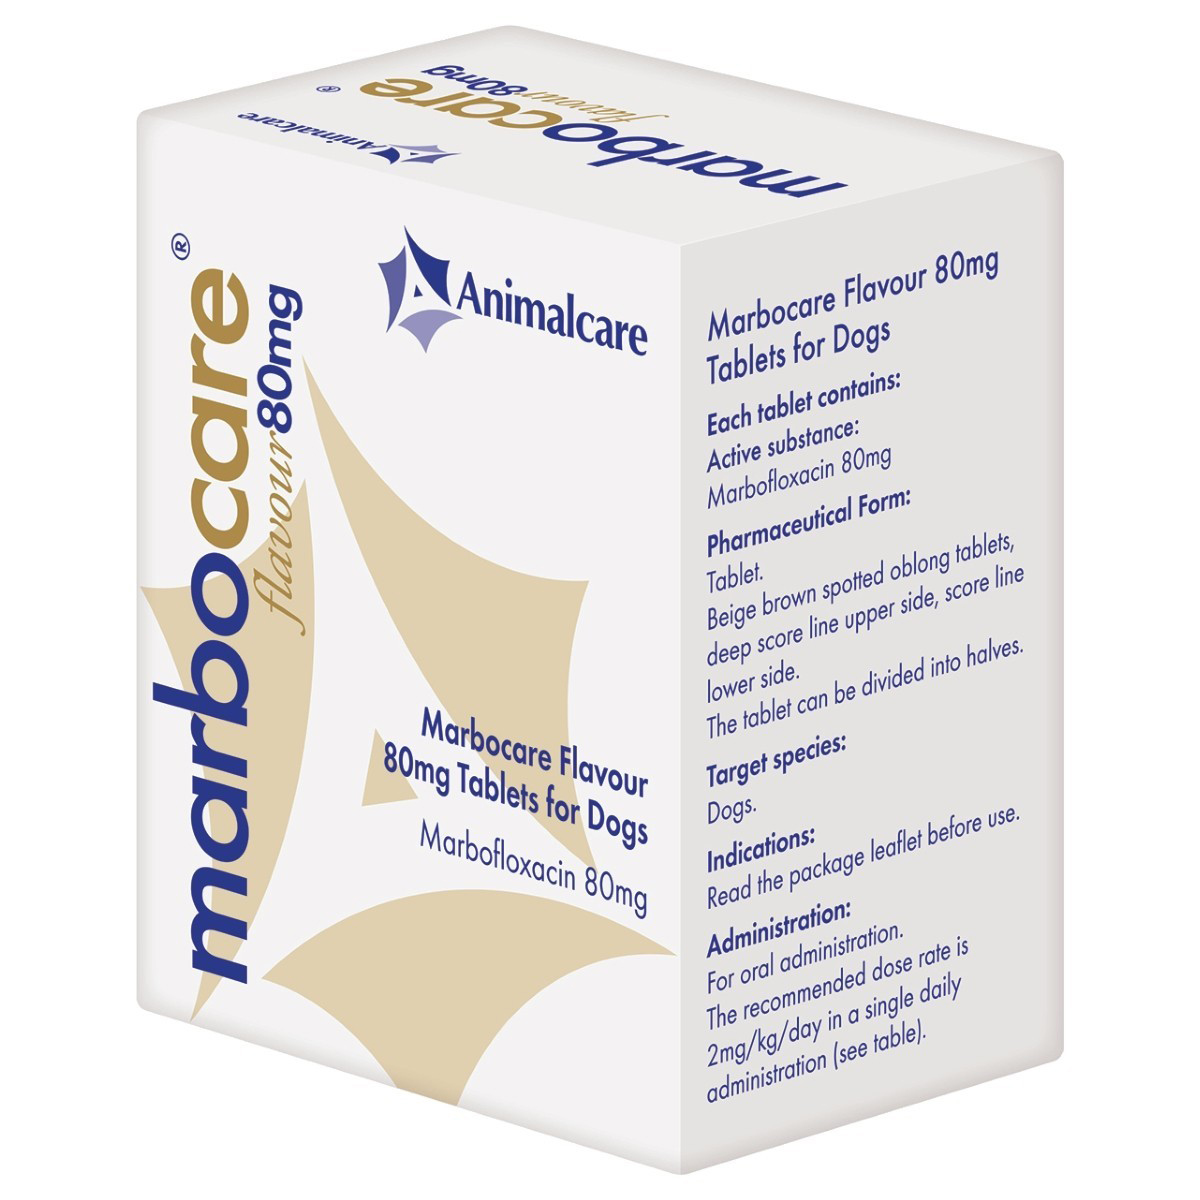 Marbocare 80mg Flavoured Tablet for Dogs on Animed Direct